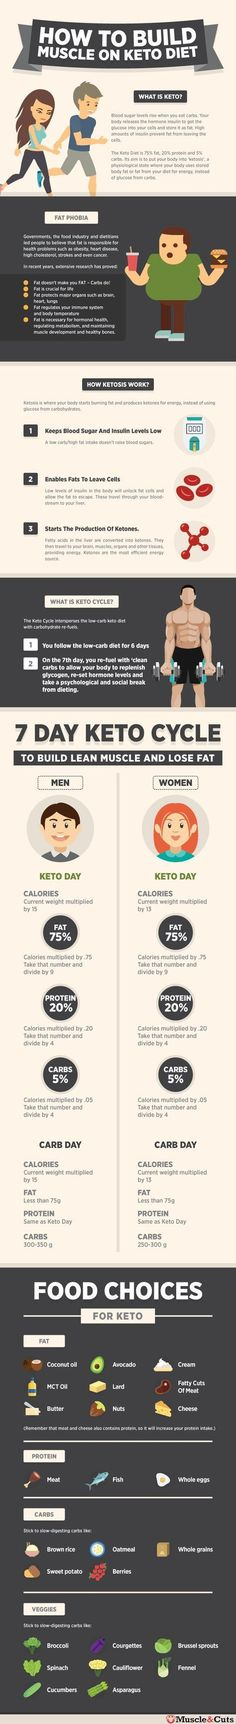 How To Build Muscle On Keto Cycle Diet #ketocycle #muscleonketo